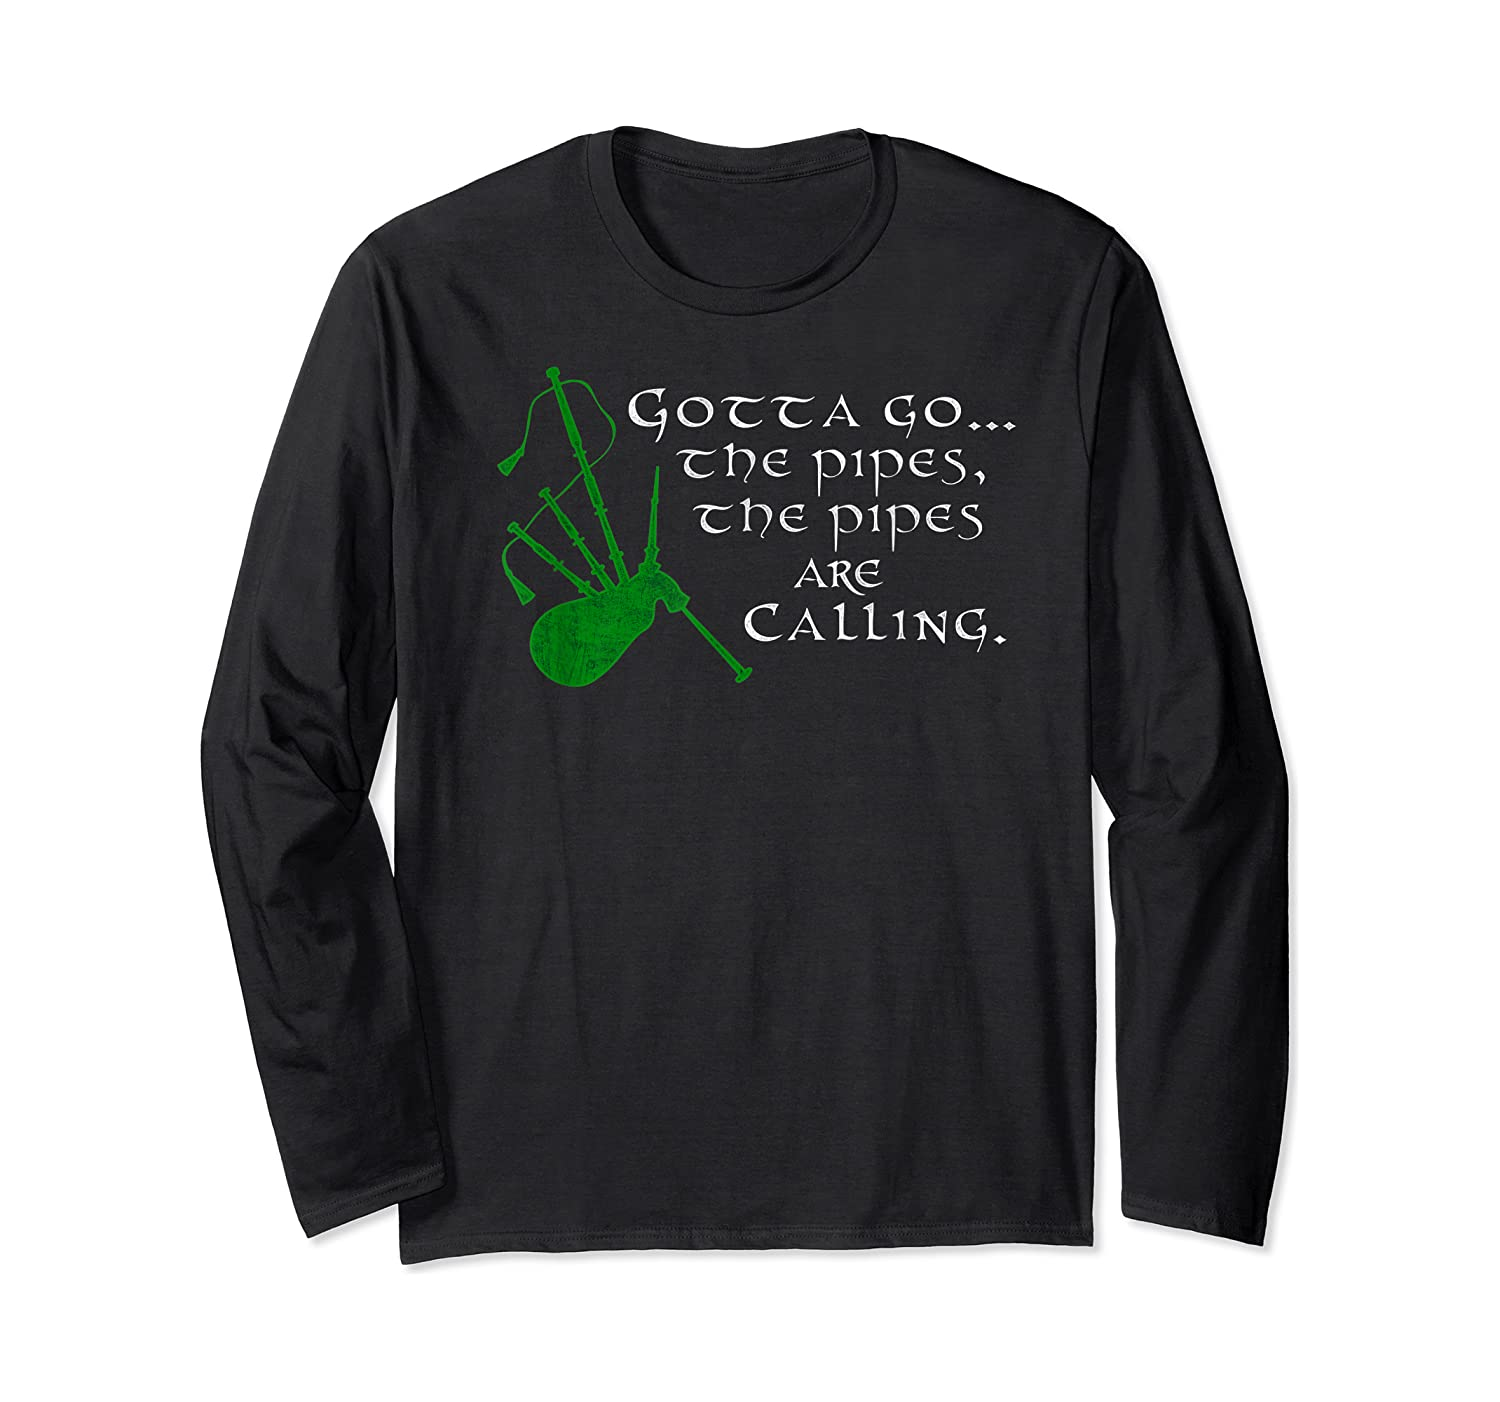 Funny Scottish Quote Gotta Go The Pipes Are Calling Bagpipes T-shirt Long Sleeve T-shirt